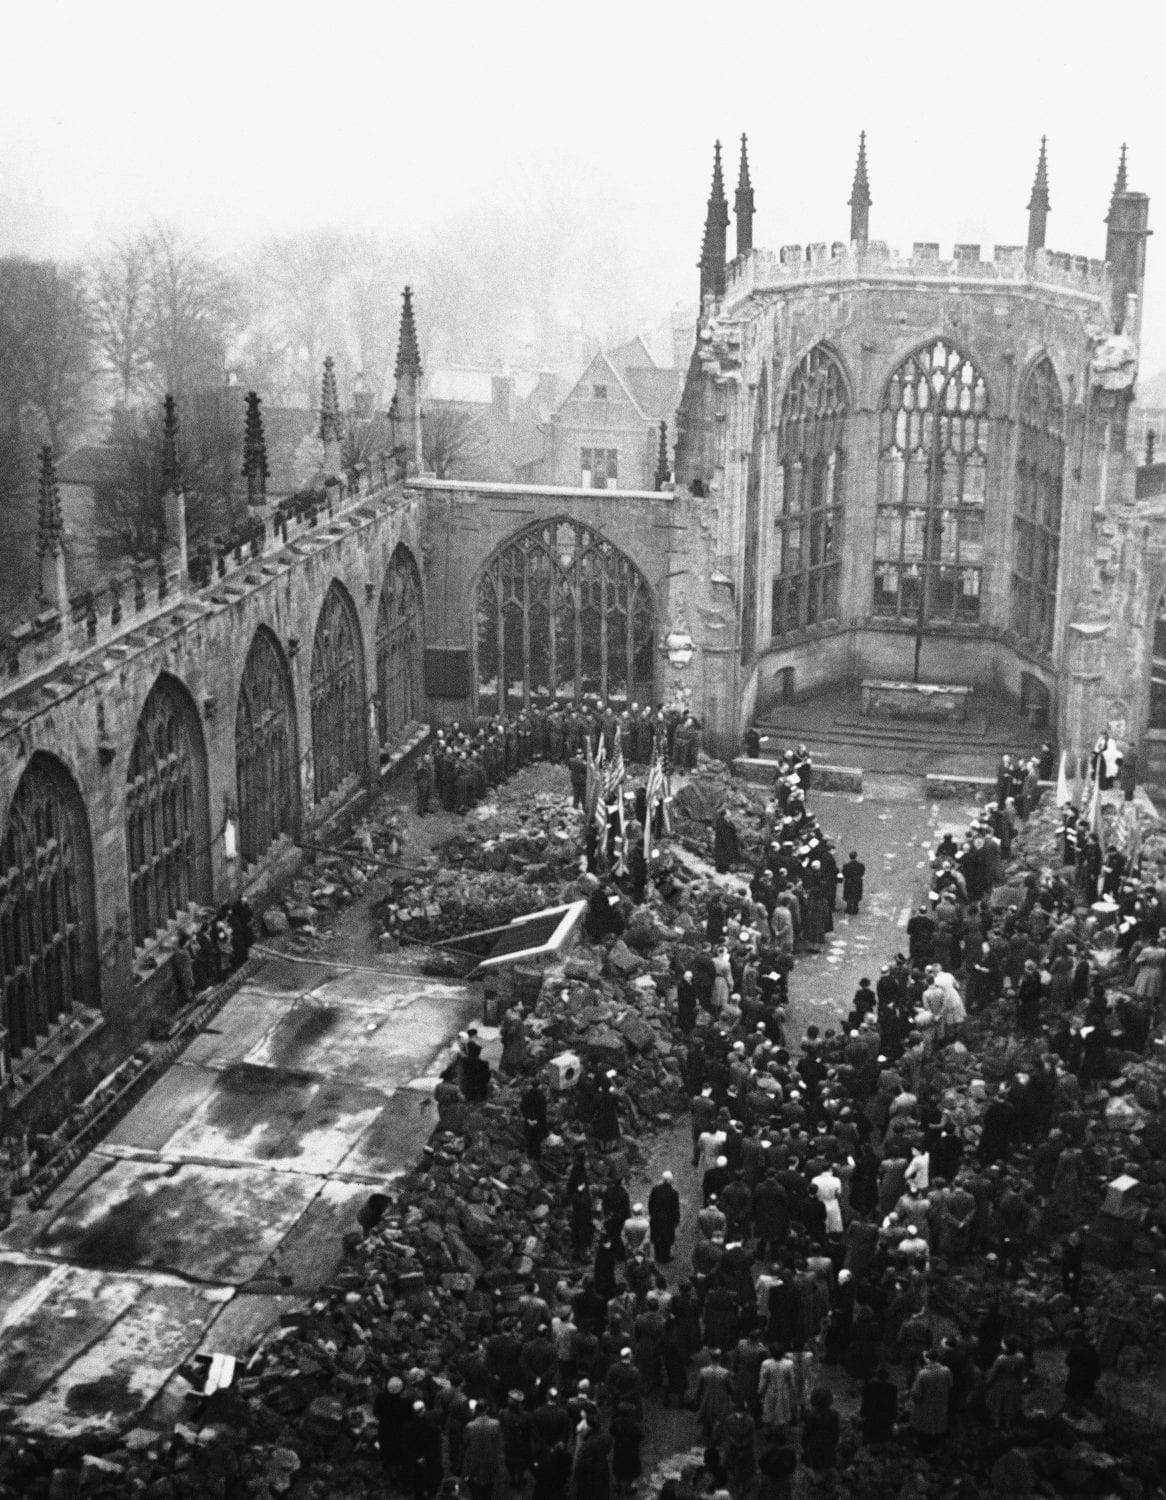 Many notable personalities, including Dr. Edvard Benes, president of Czechoslovakia, unseen, attended a Lidice Commemoration Service in Coventry Cathedral in Coventry, England on March 12, 1944. (AP Photo)